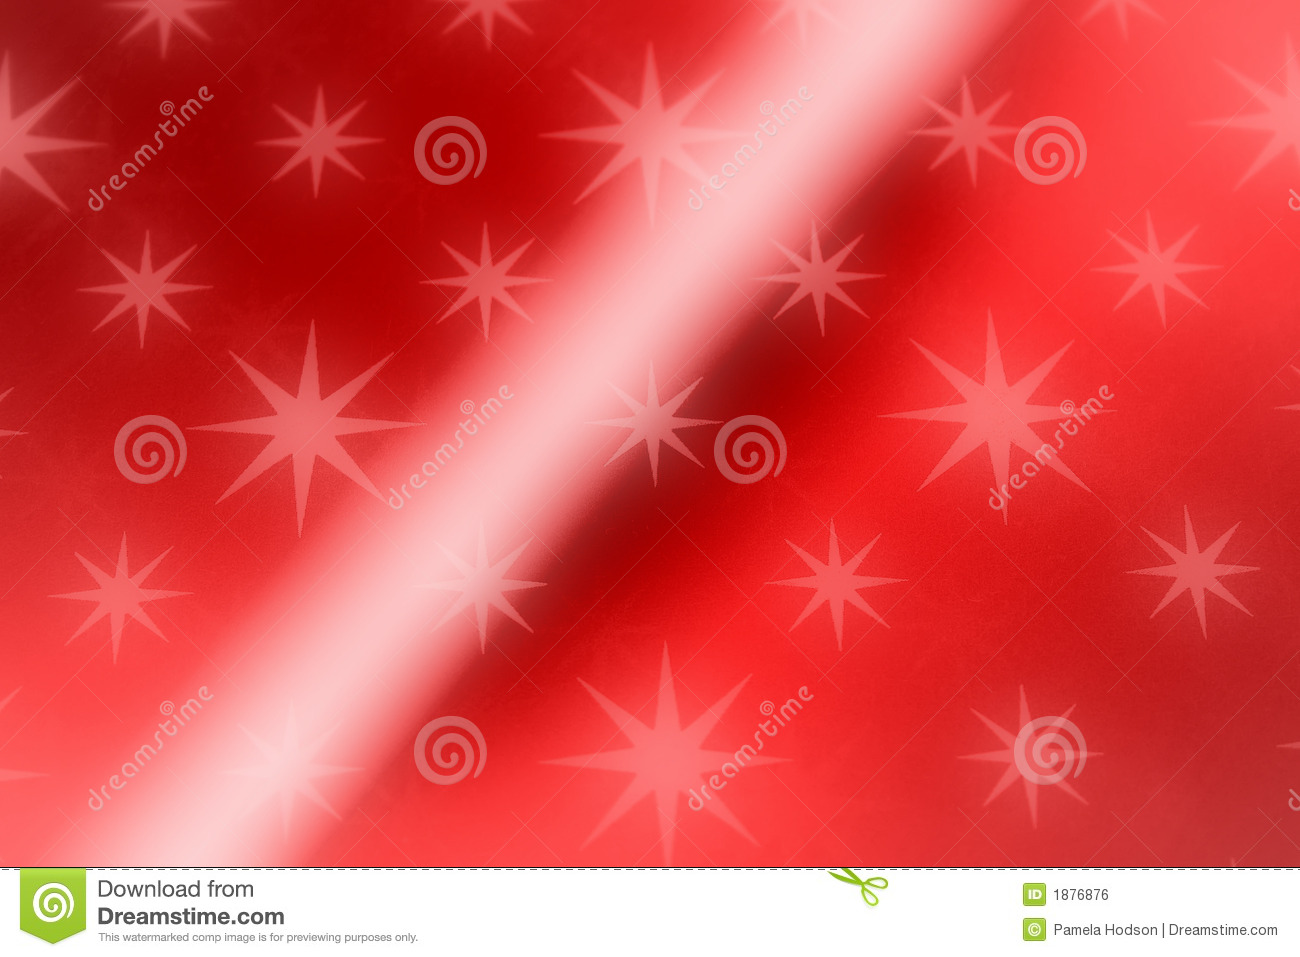 red star background - photo #22